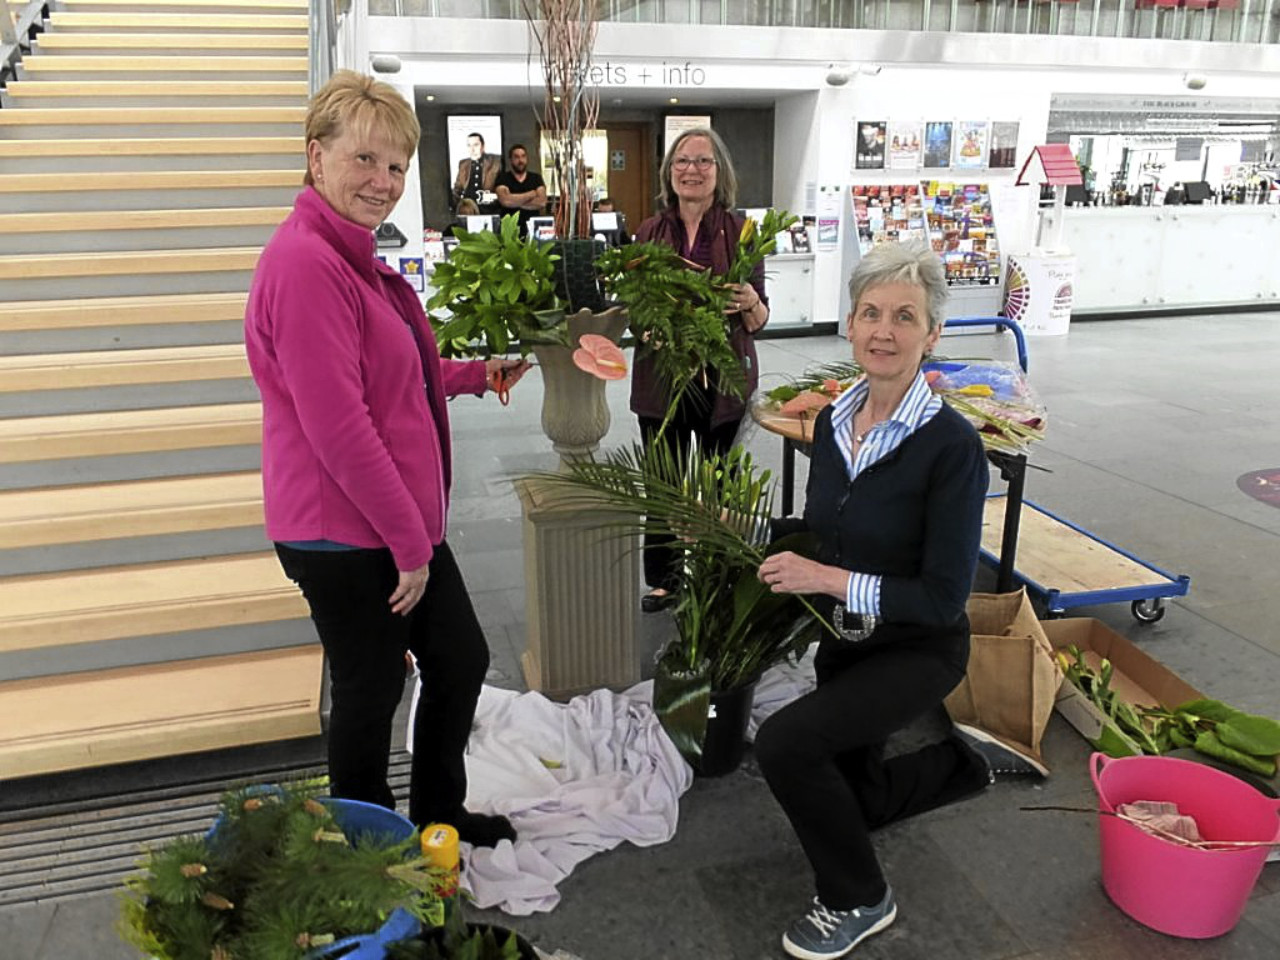 Perth Flower Club members Helen Jackson, Maggie Corke and Janice Sloan decorating the Concert Hall for Perth Festival of the Arts.